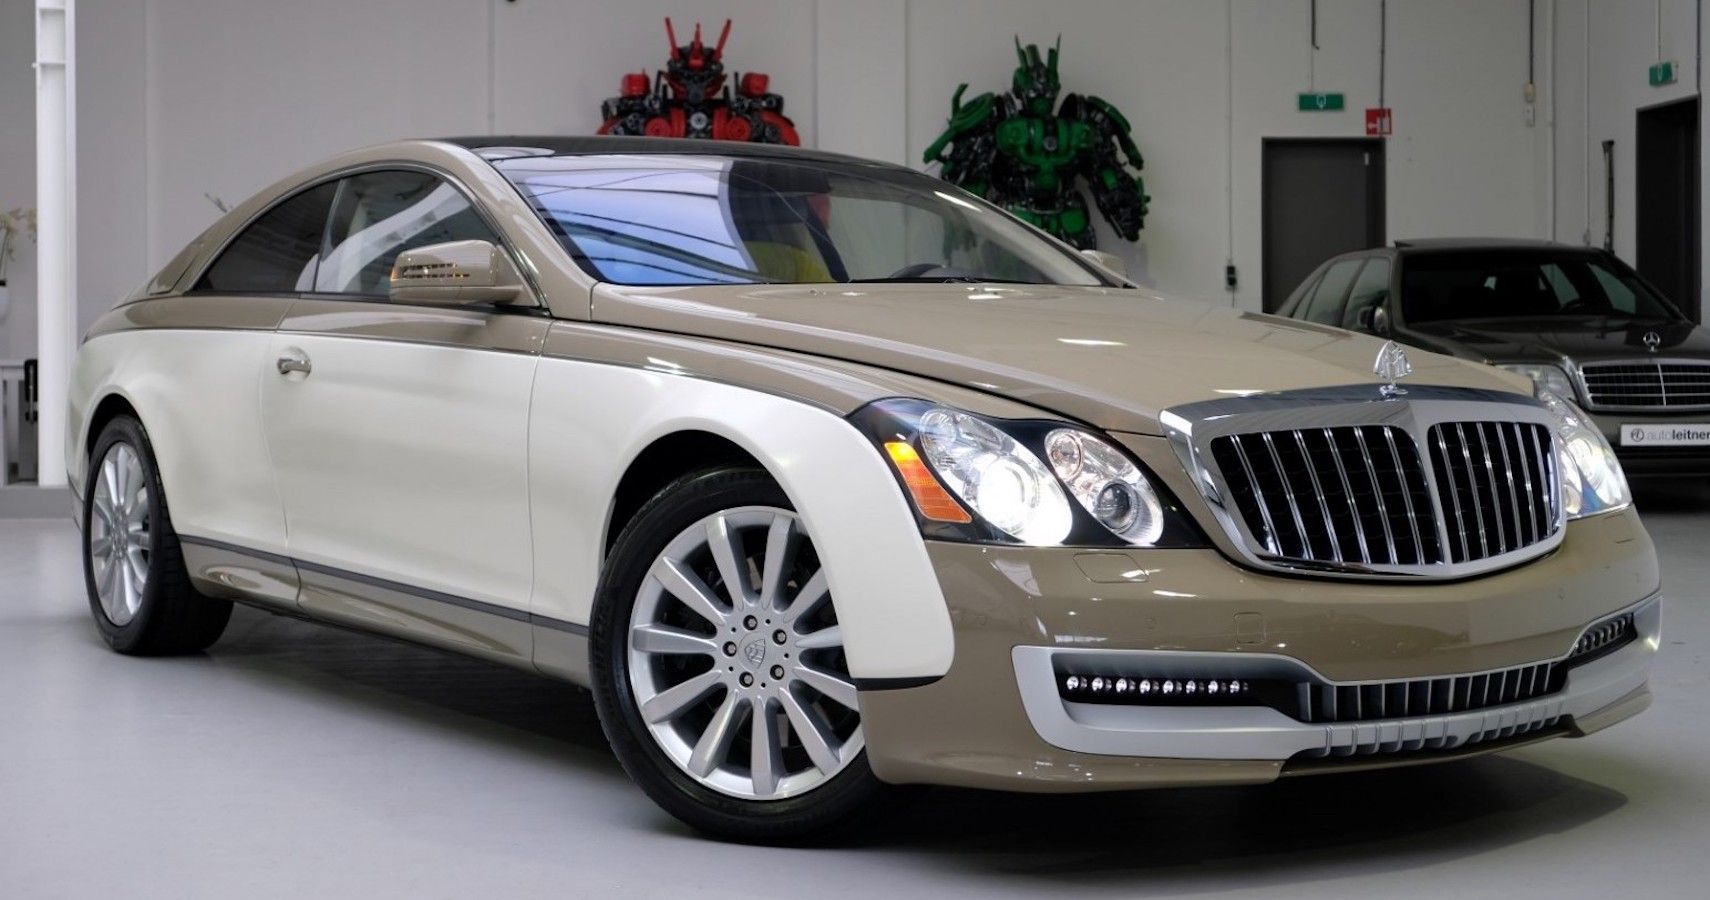 This Former Dictator's Super Exclusive Maybach Could Be Yours For Just $1 Million